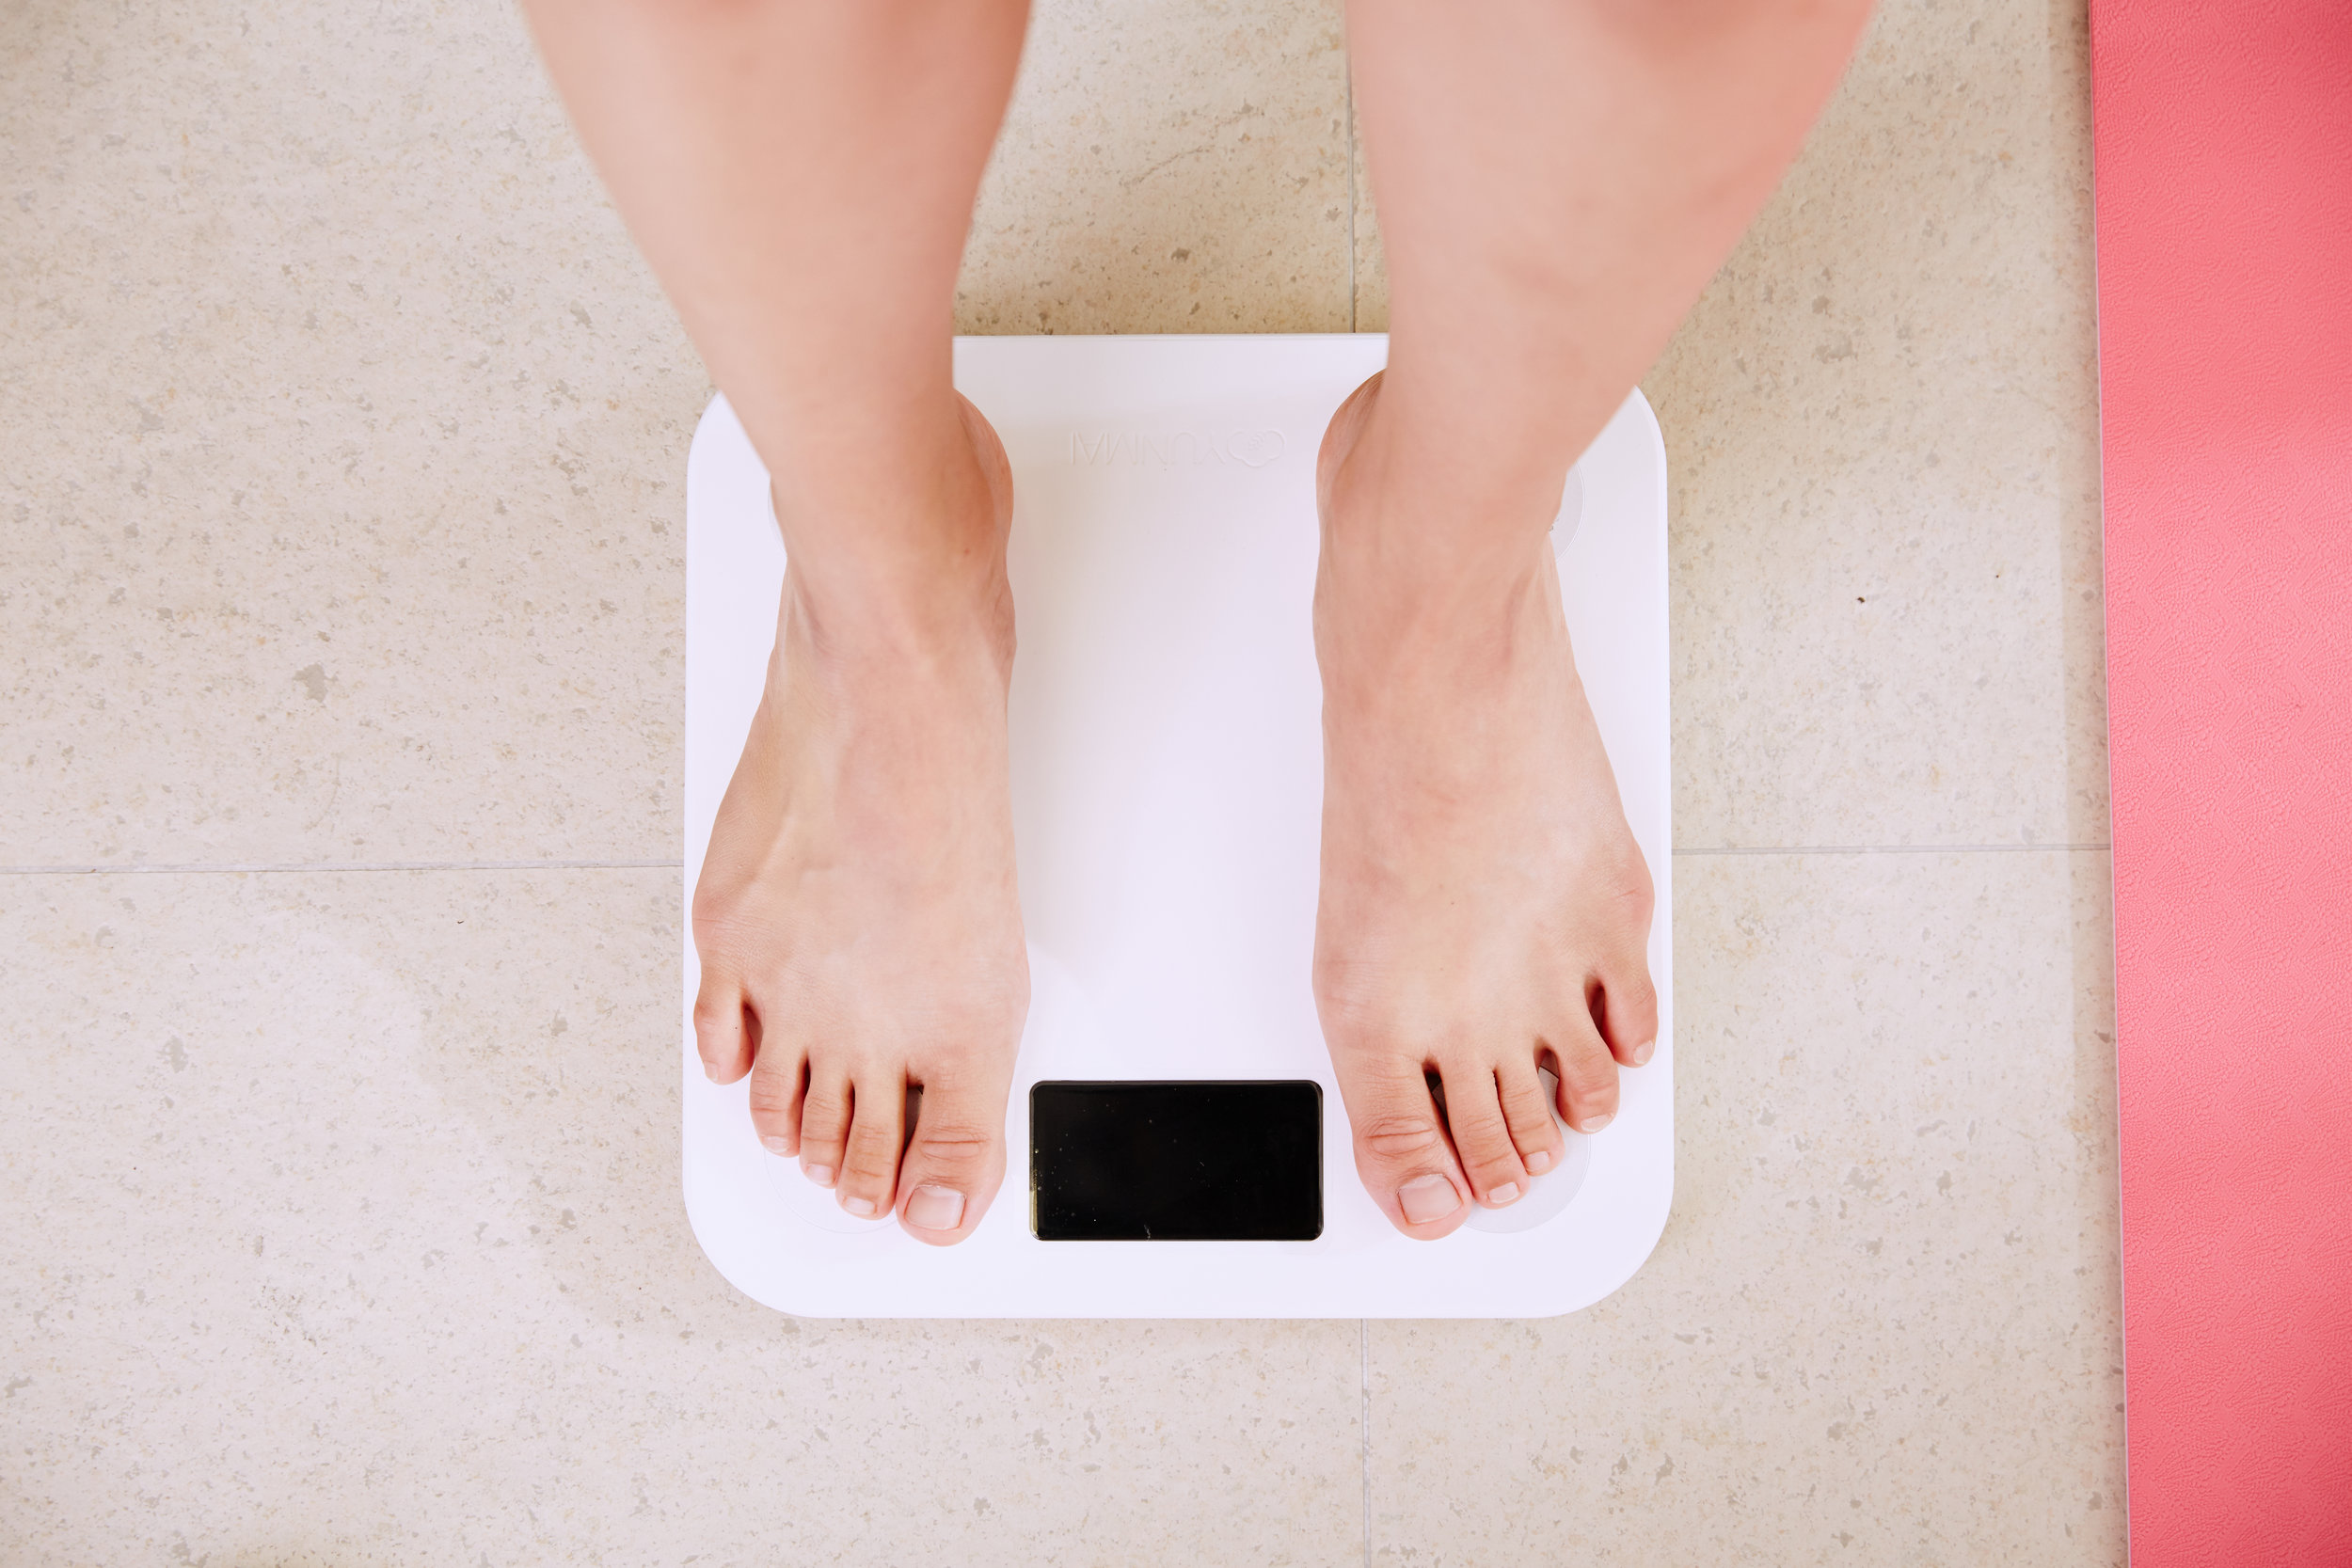 Loose Weight - diabetes, high blood pressure, hormone imbalance, hypothyroid